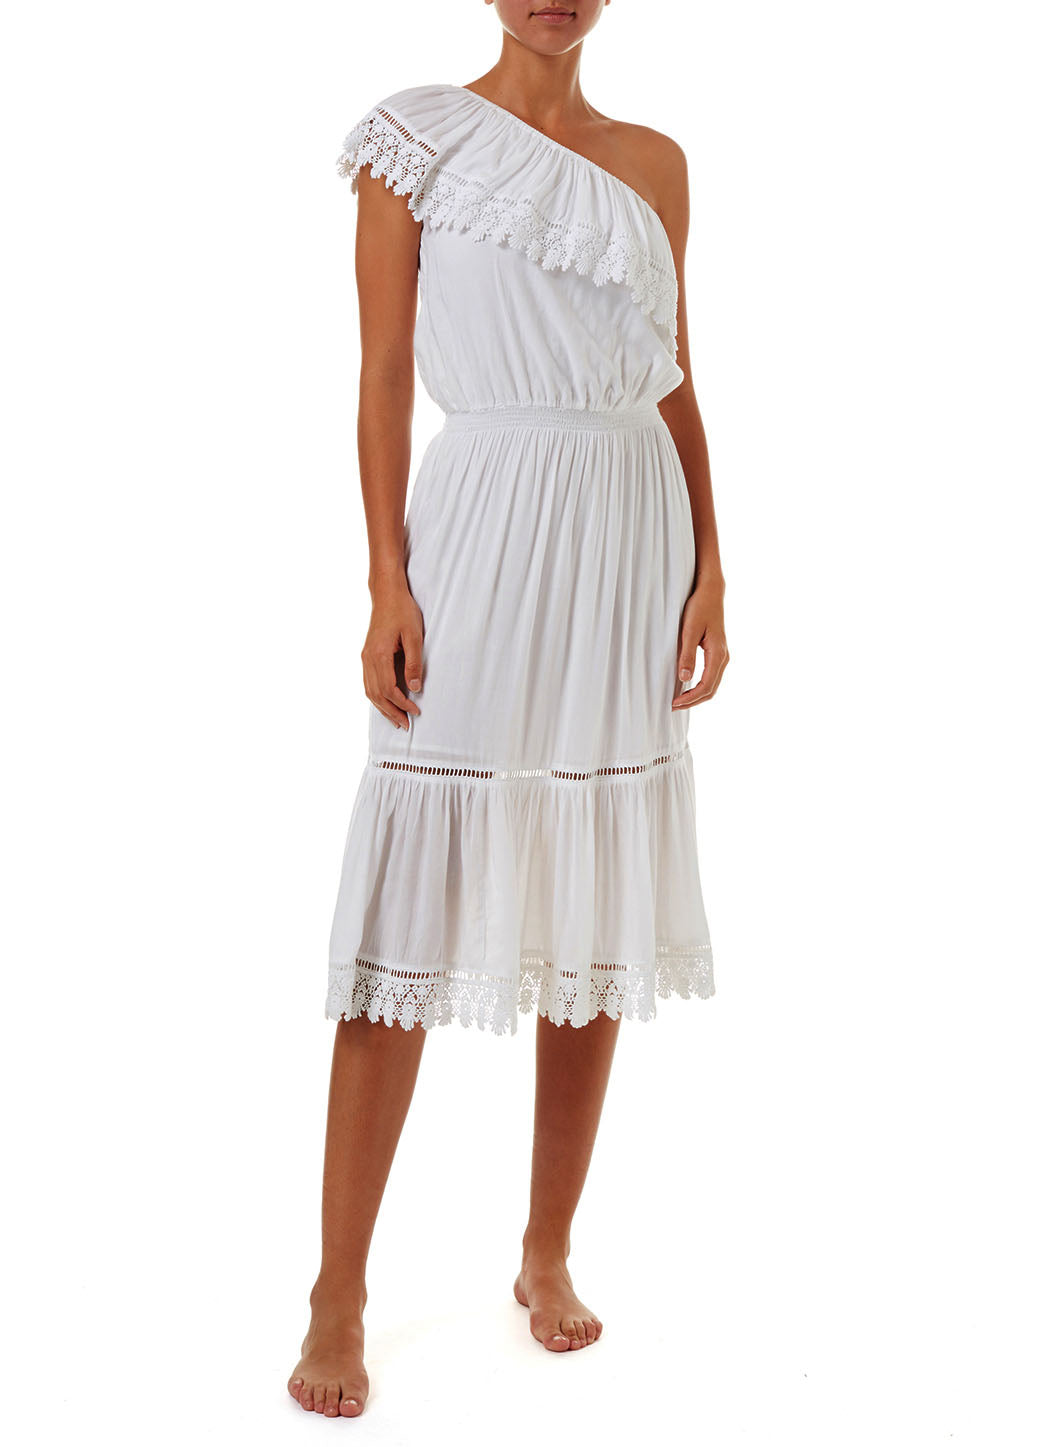 Jo White One Shoulder Embroidered Frill Midi Dress